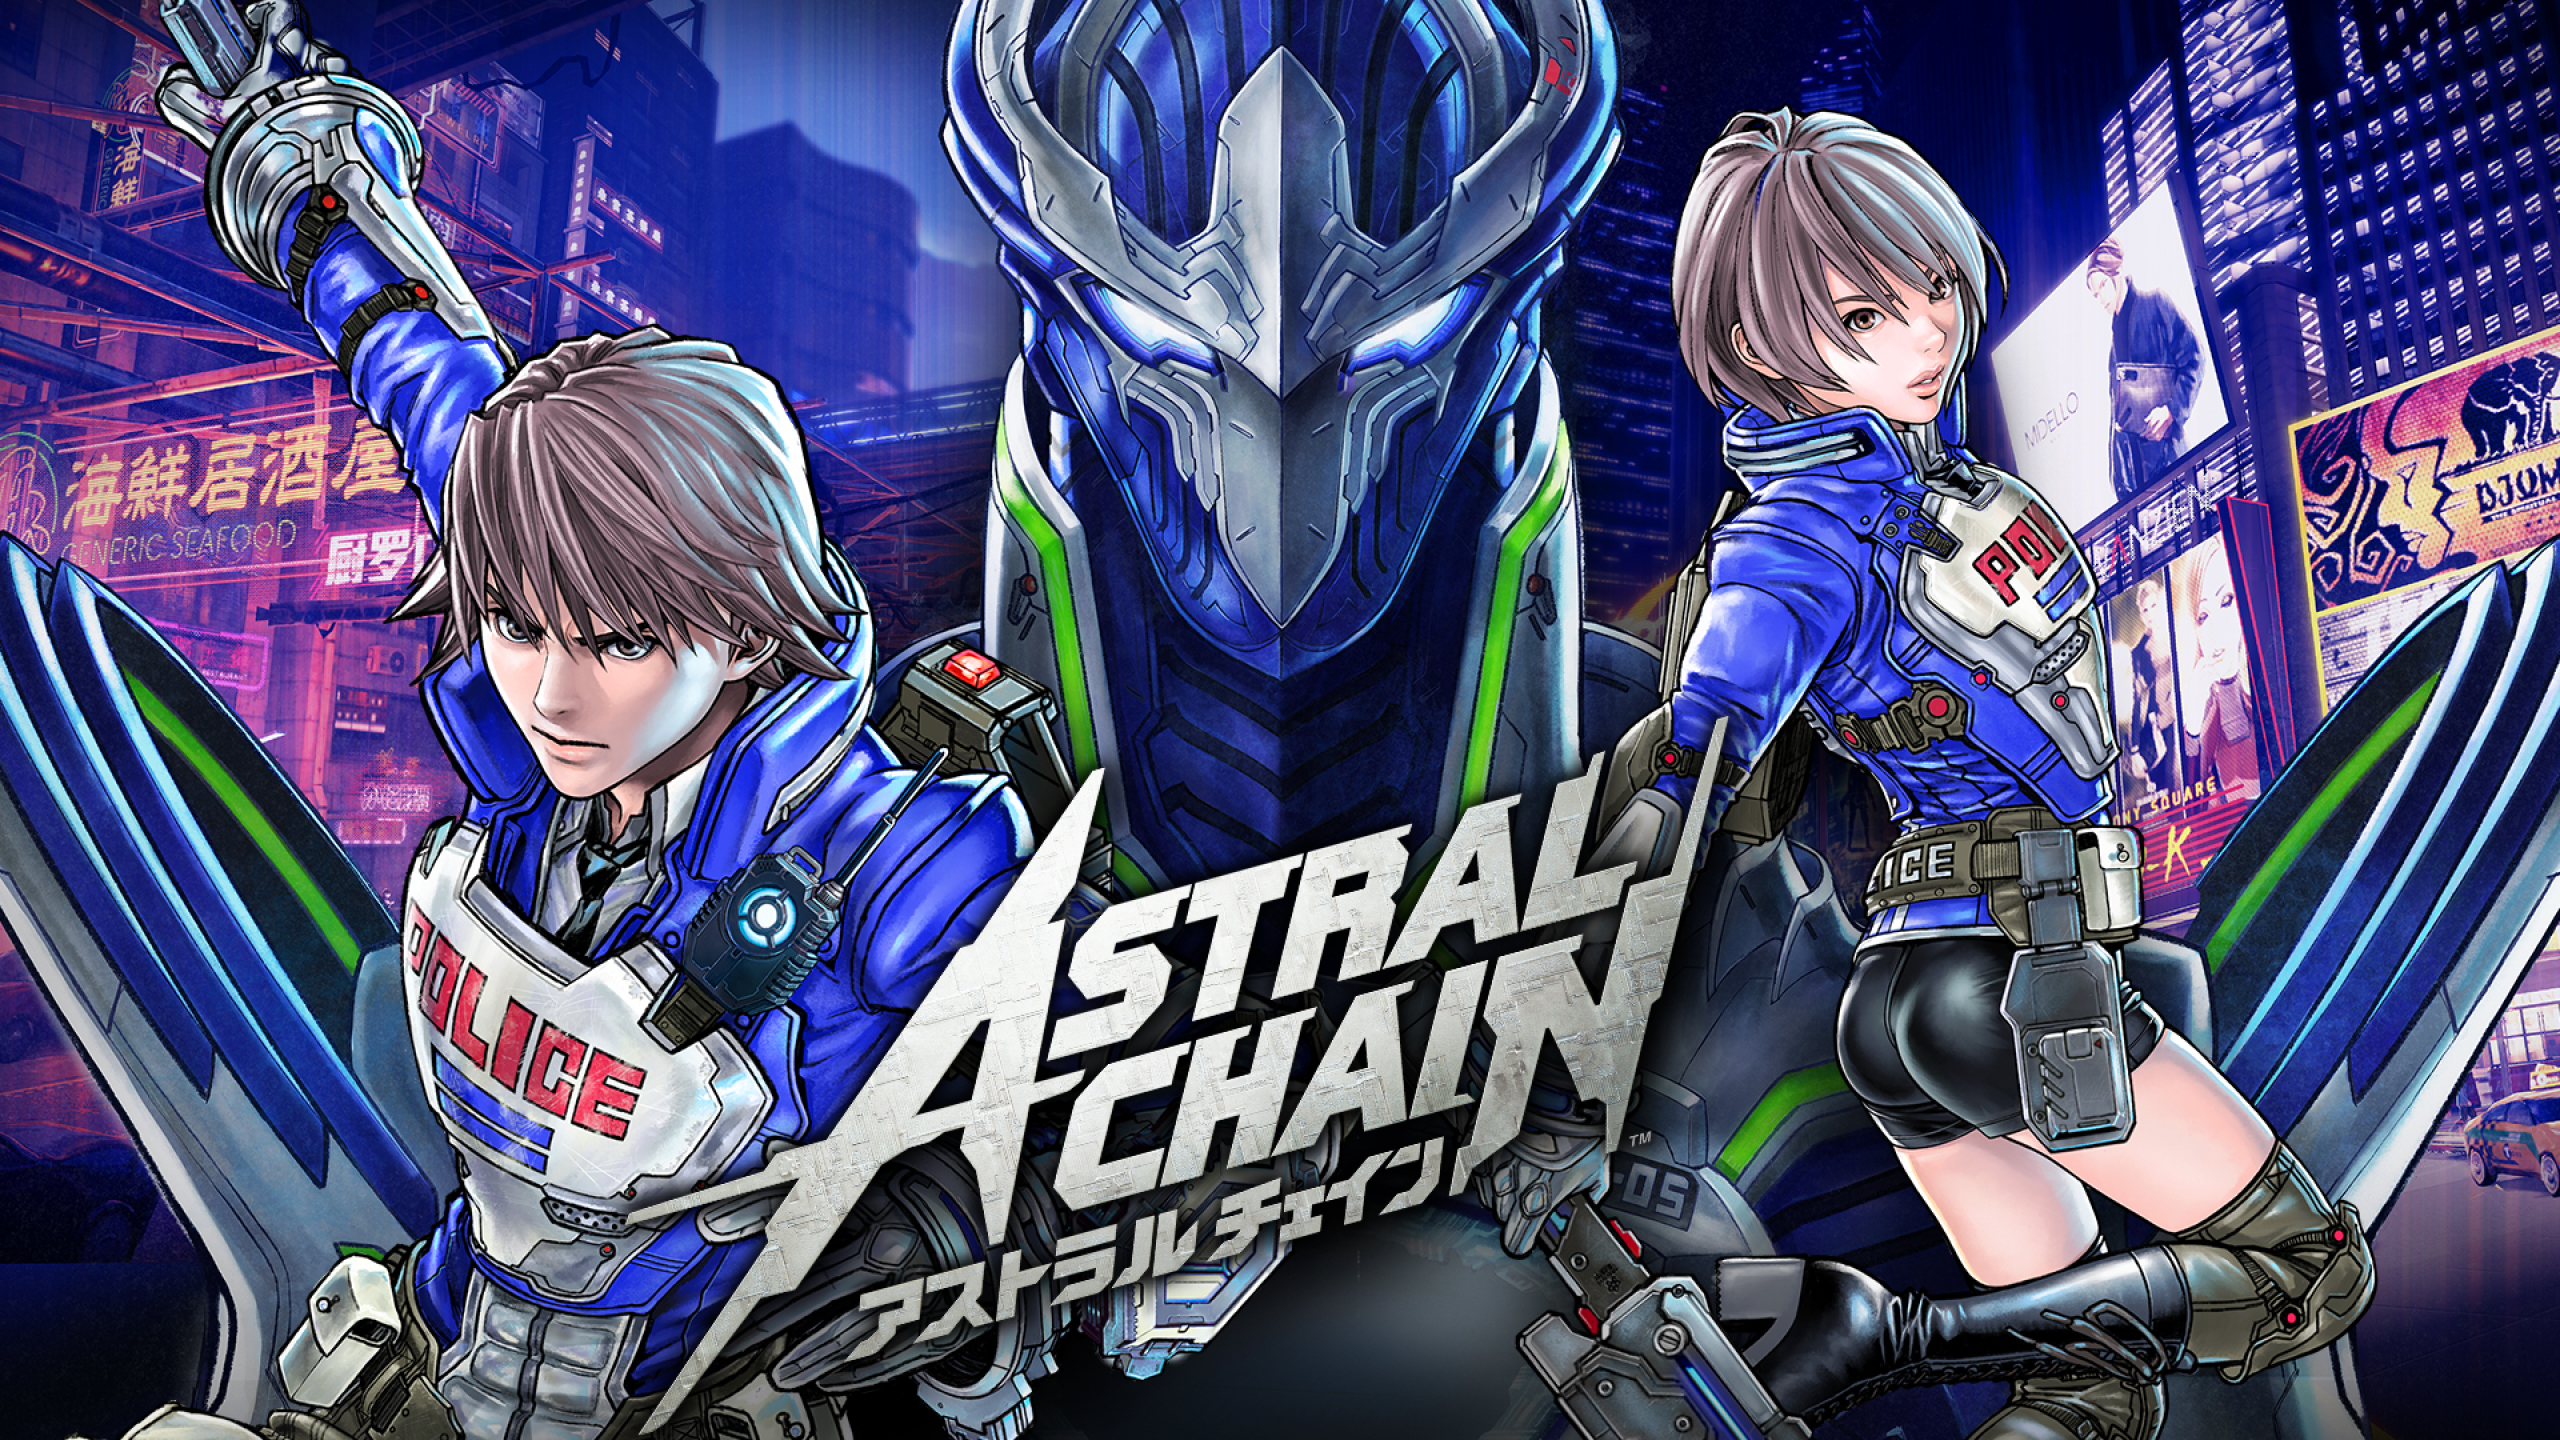 2560x1440 Astral Chain 1440p Resolution Wallpaper Hd Games